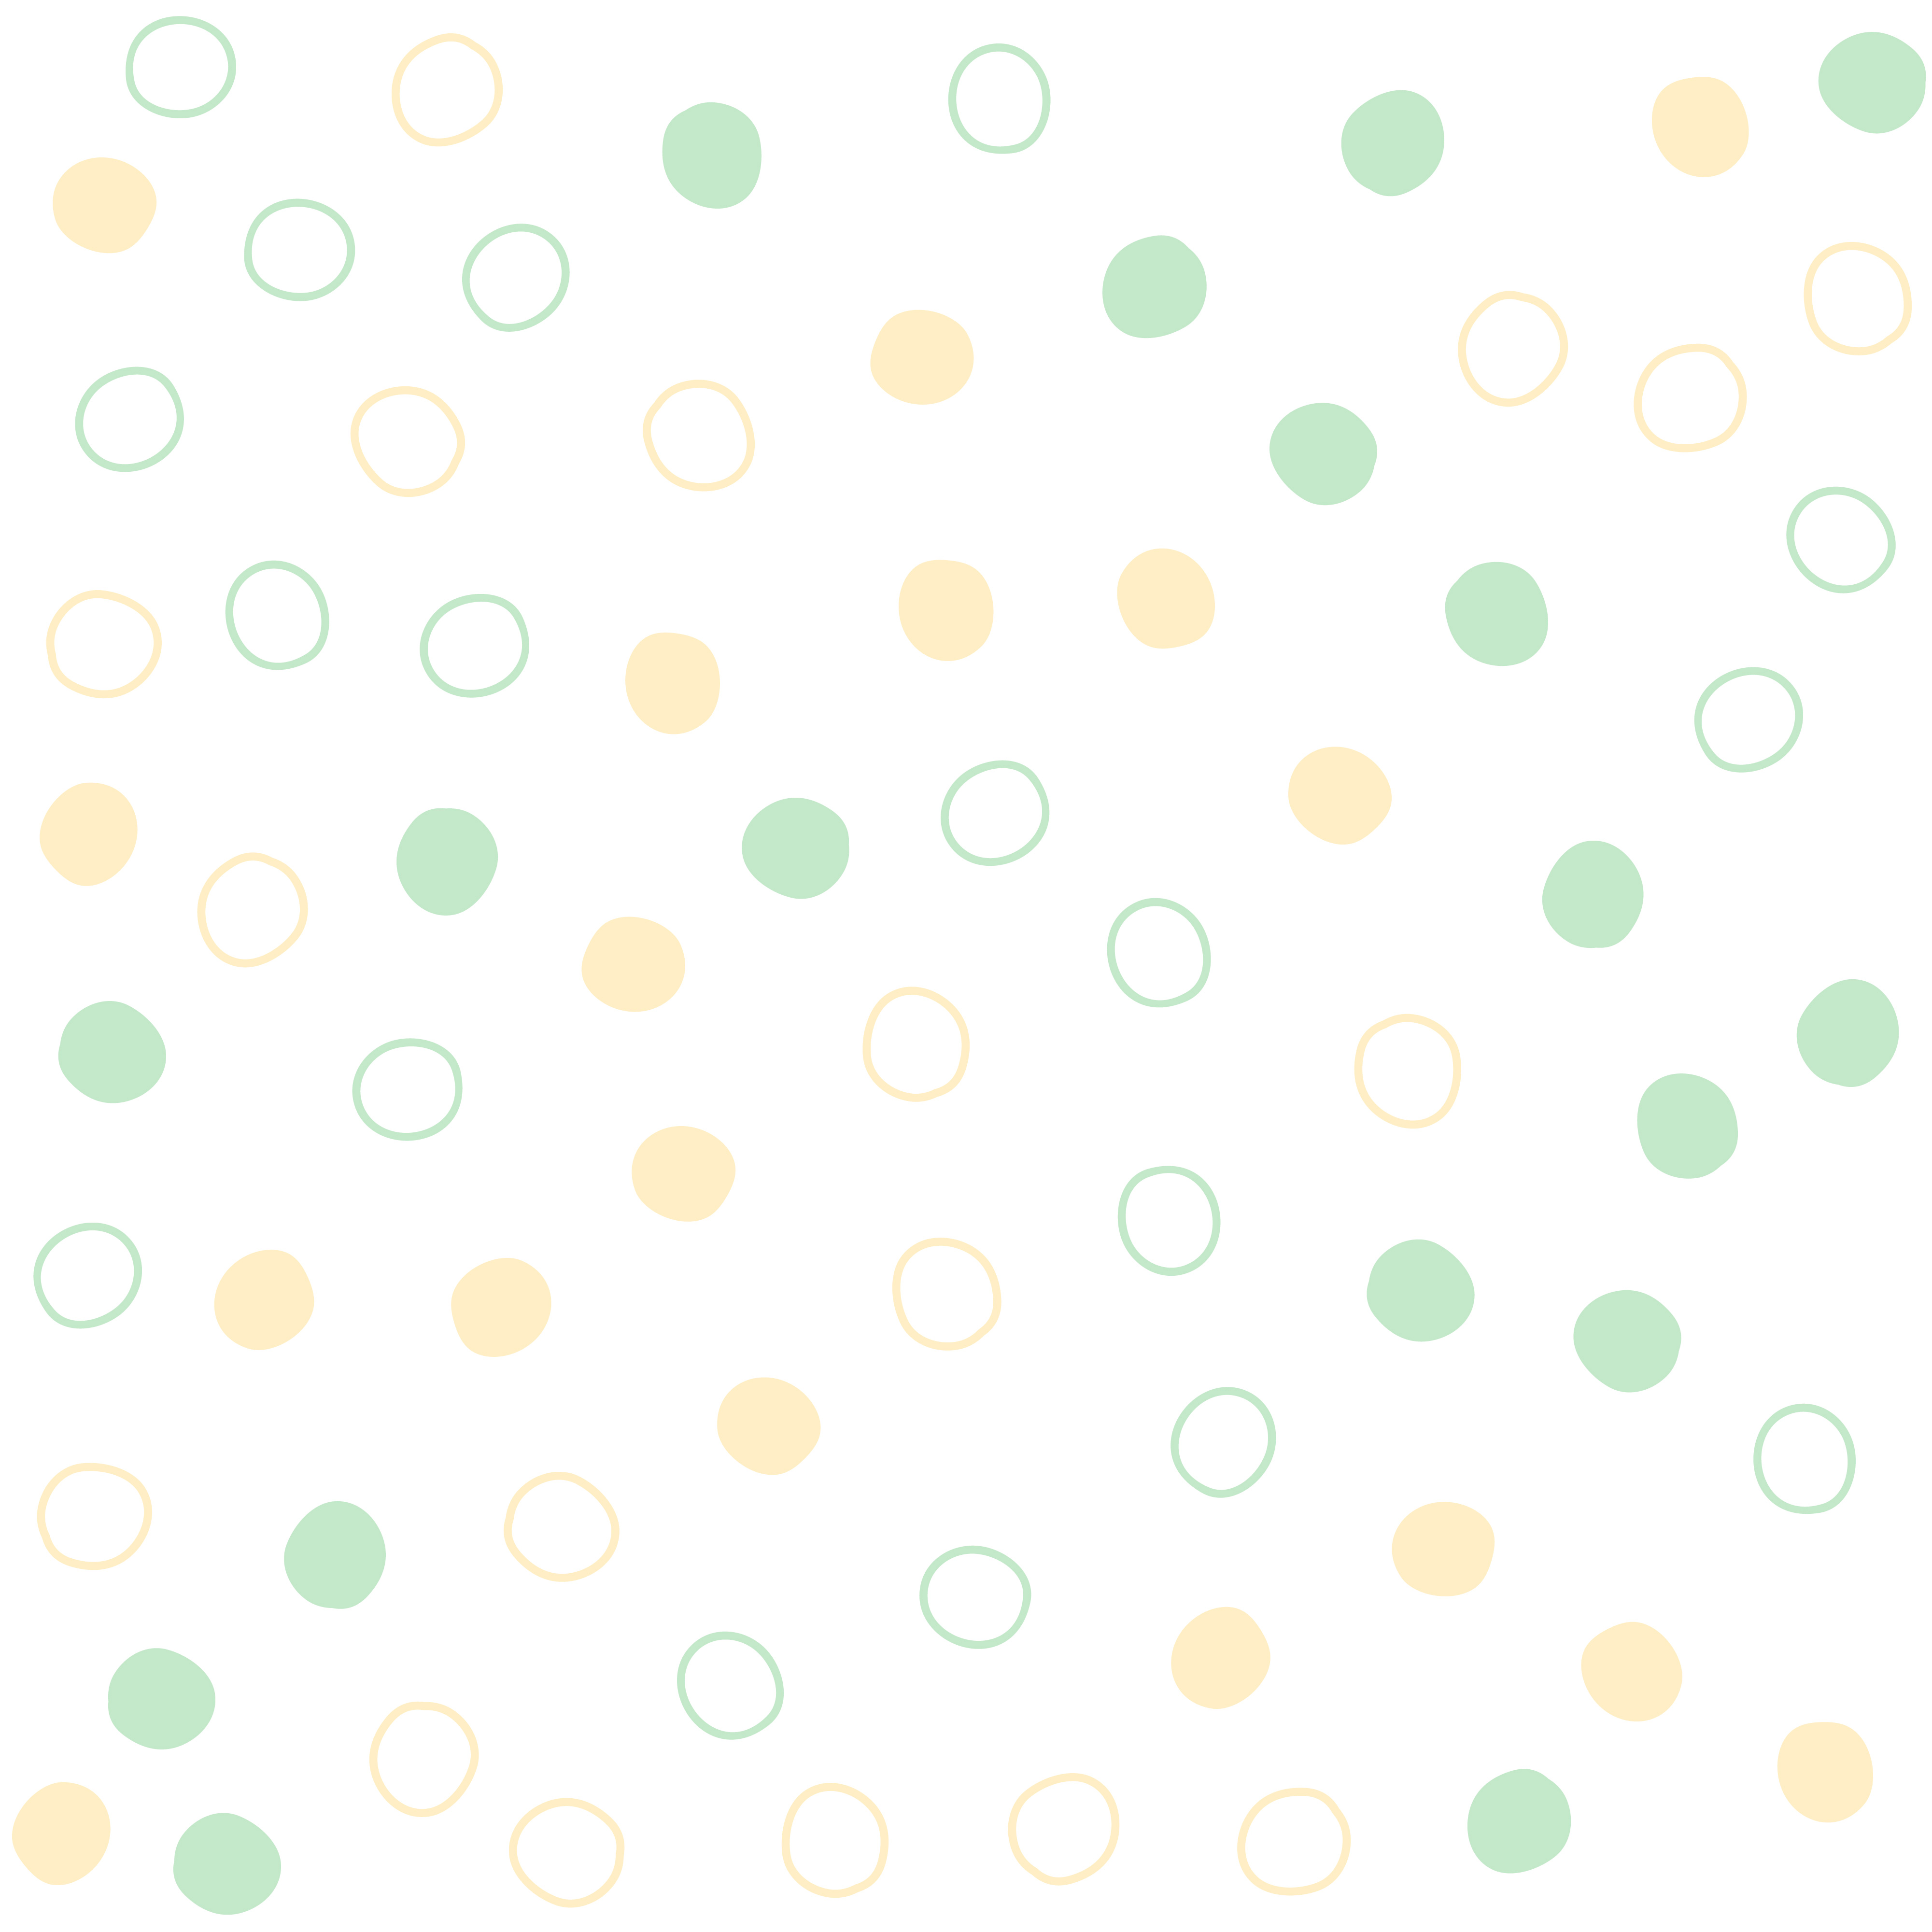 Cute Soft Color Subtle Pattern Background Download Free Vector Art Stock Graphics Amp Images